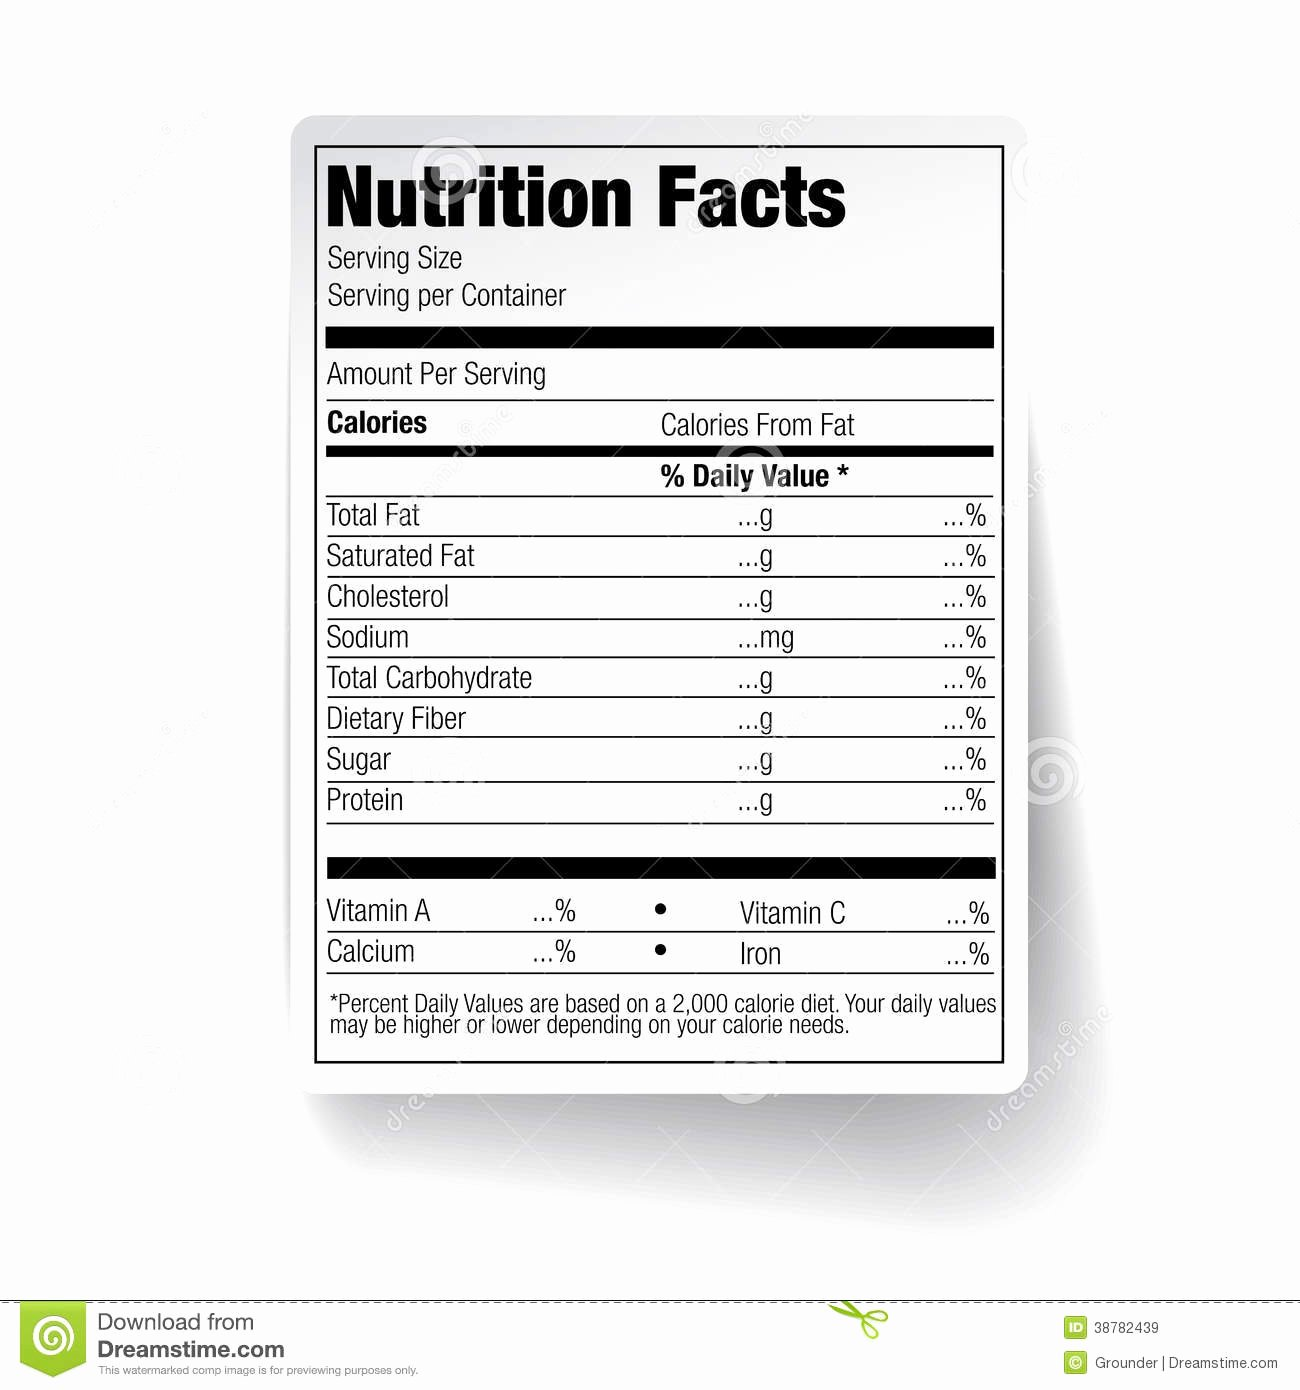 Nutrition Facts Label Template Fresh Label Template Id28